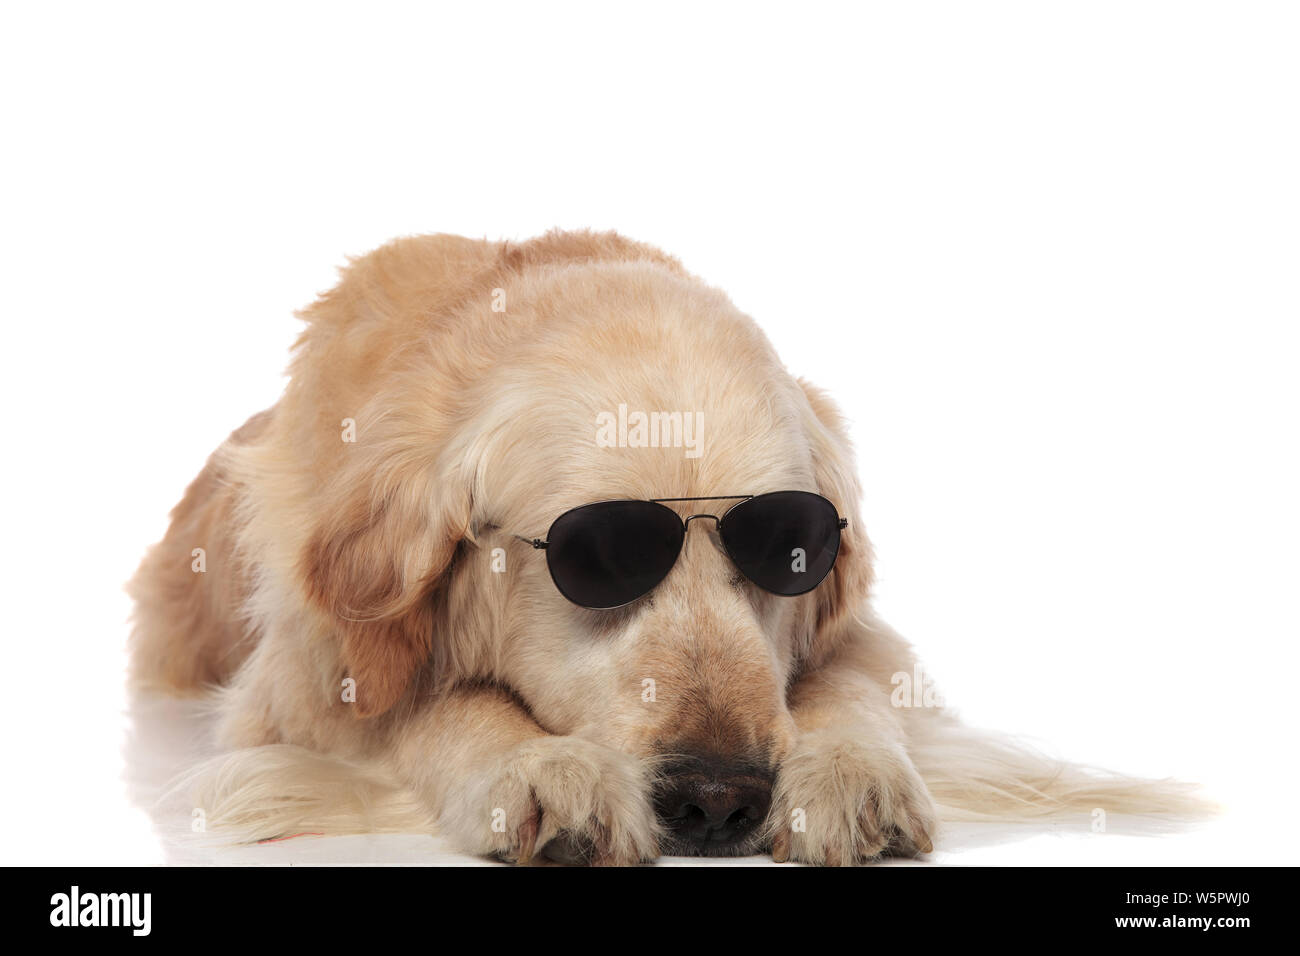 Labrador Wearing Sunglasses Stock Photos Amp Labrador